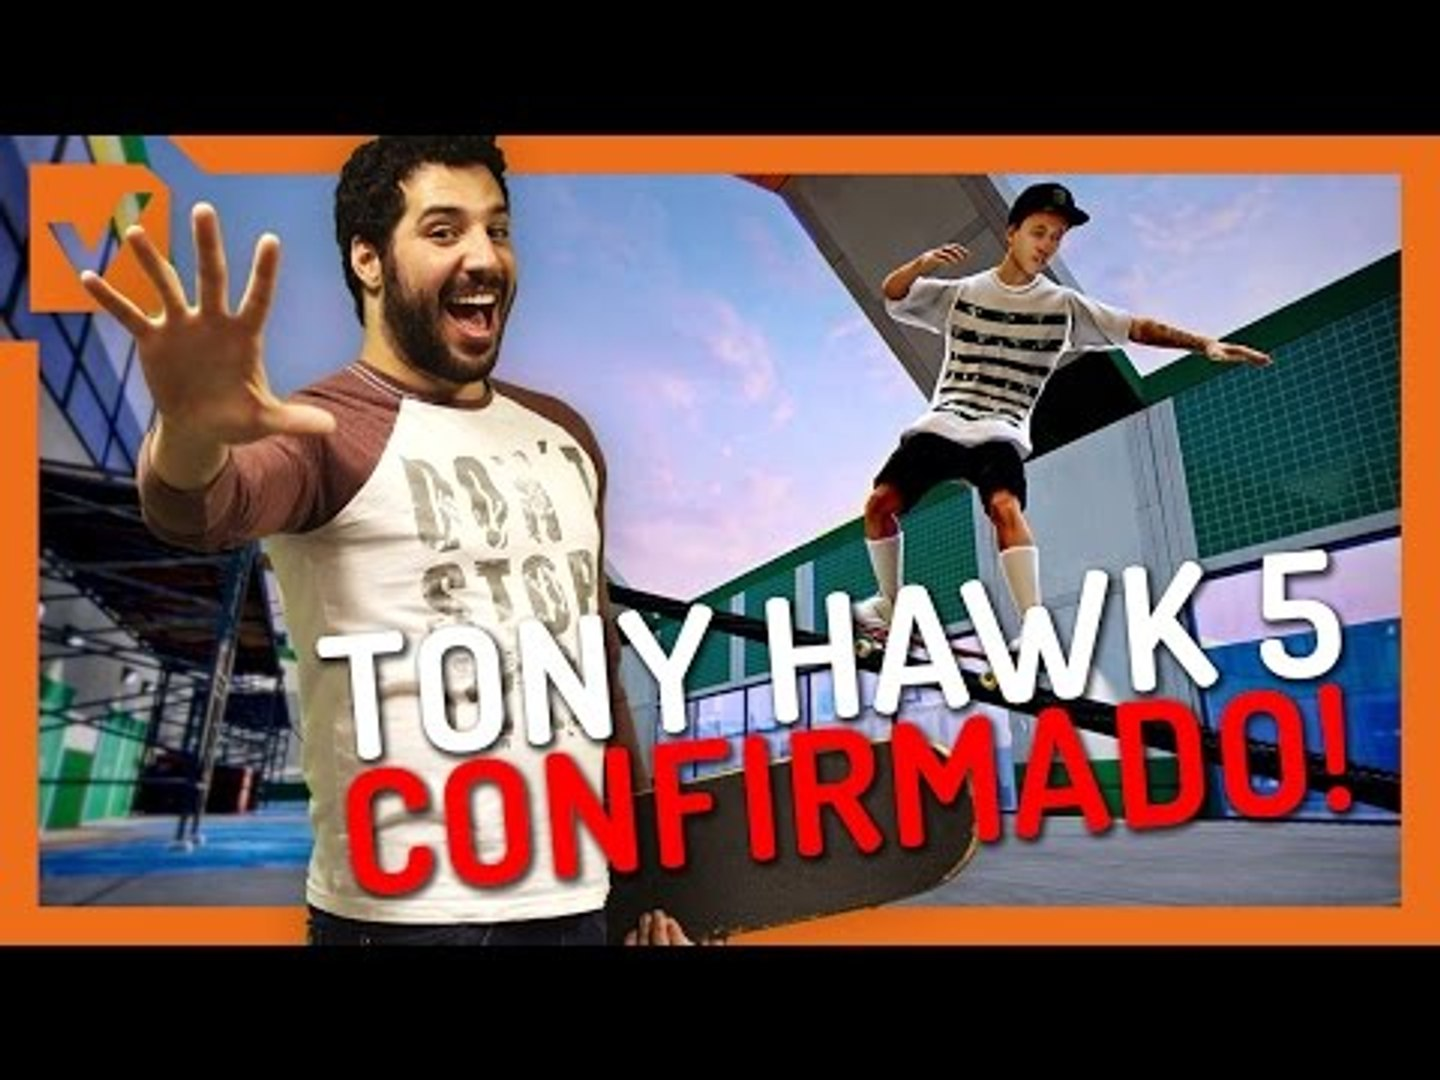 Checkpoint (05/05/15) - Tony Hawk 5 confirmado, MKX no Android e DLC de Goat Simulator